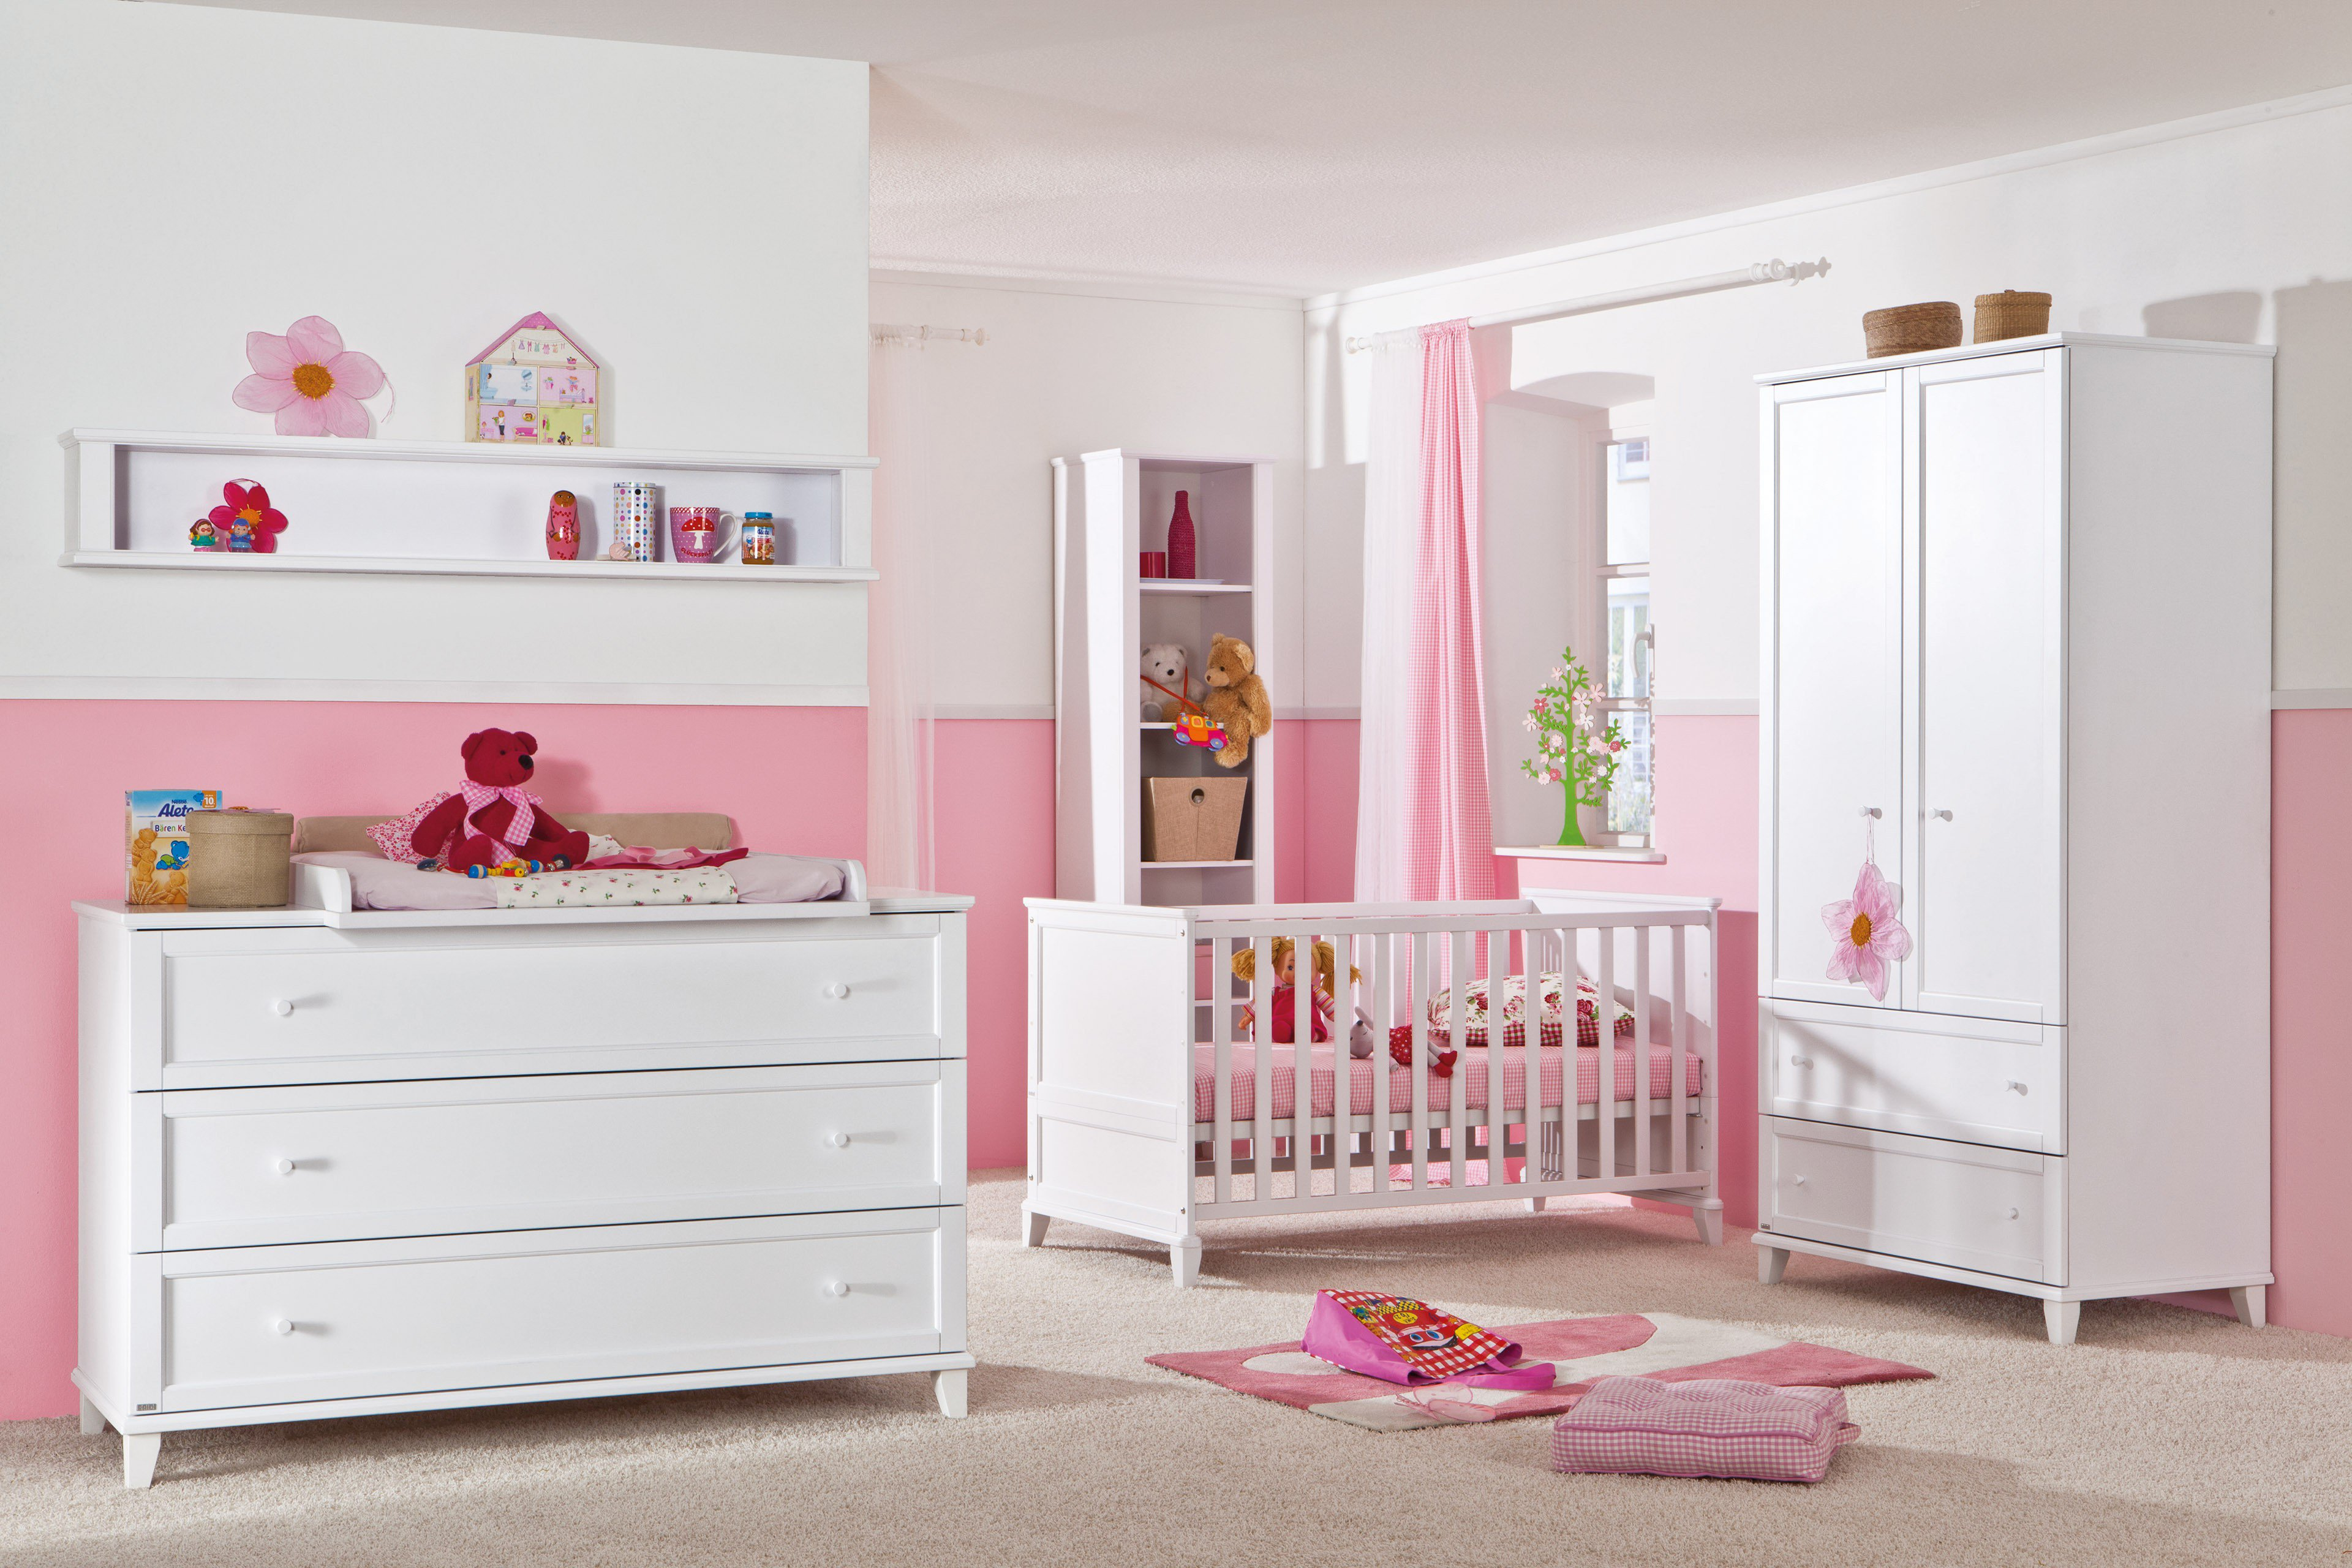 paidi komplett babyzimmer sophia wei m bel letz ihr online shop. Black Bedroom Furniture Sets. Home Design Ideas